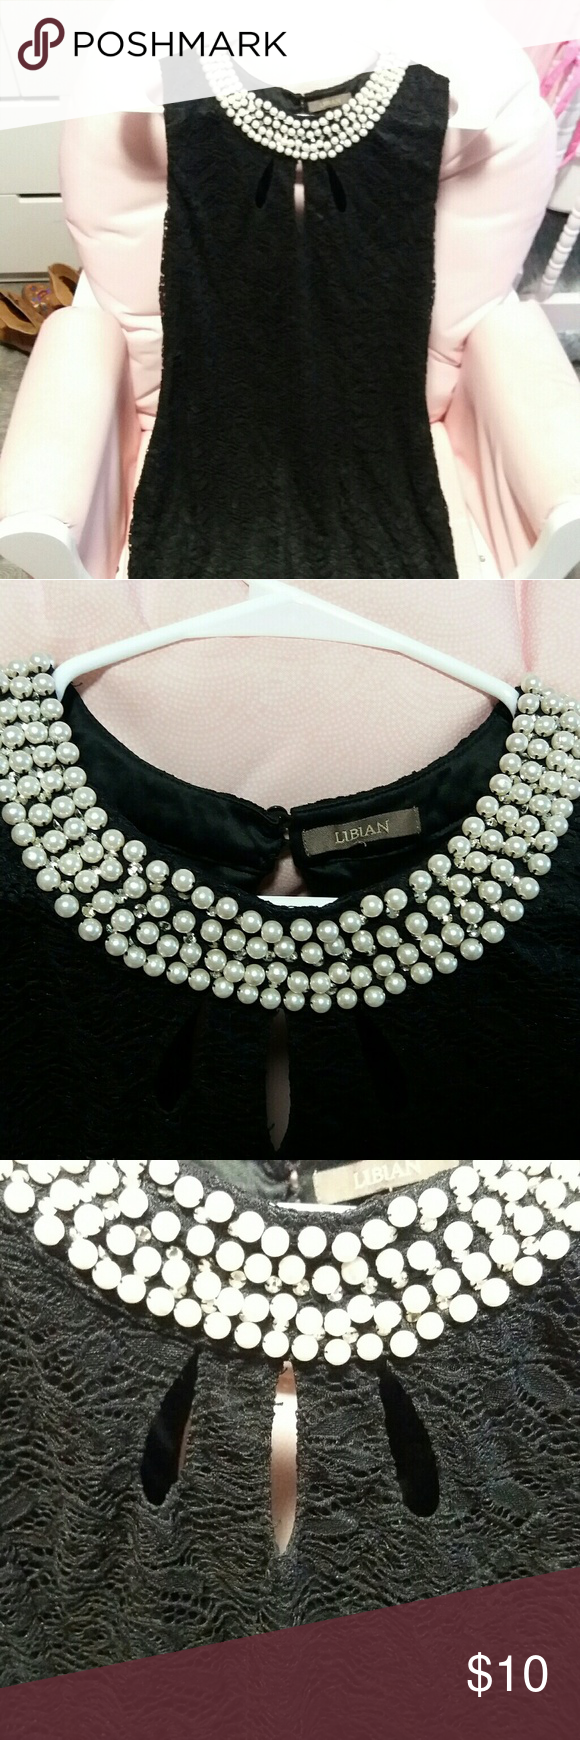 Black dress necklace 3 pearls